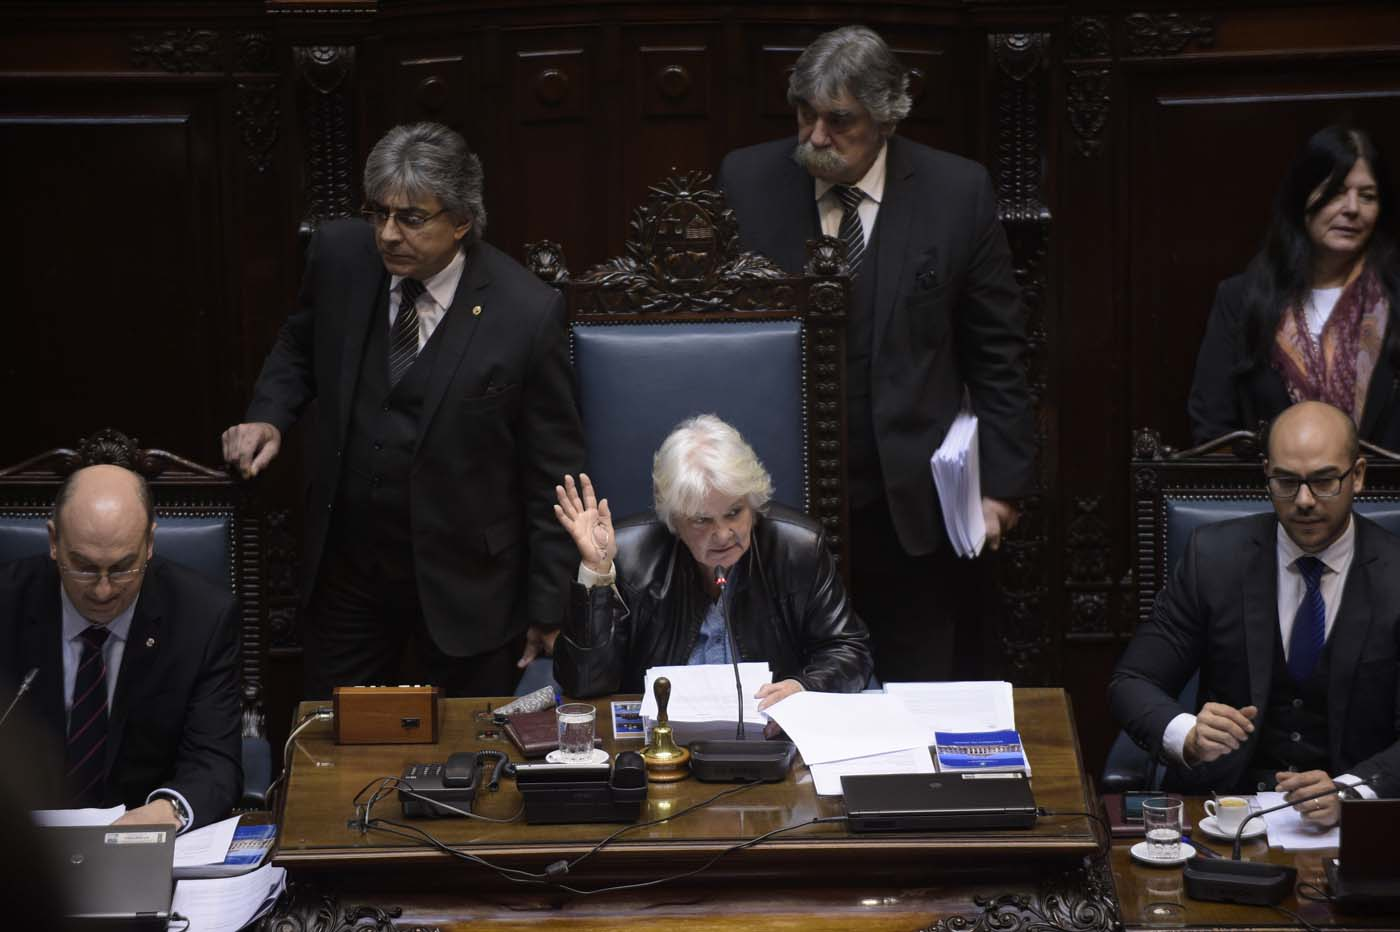 Uruguayan senator Lucia Topolansky (C) takes office as vice-president in Montevideo, on September 13, 2017. Topolansky replaces Uruguay's vice-president Raul Sendic, who resigned on Saturday over allegations he used public money for personal shopping. / AFP PHOTO / MIGUEL ROJO